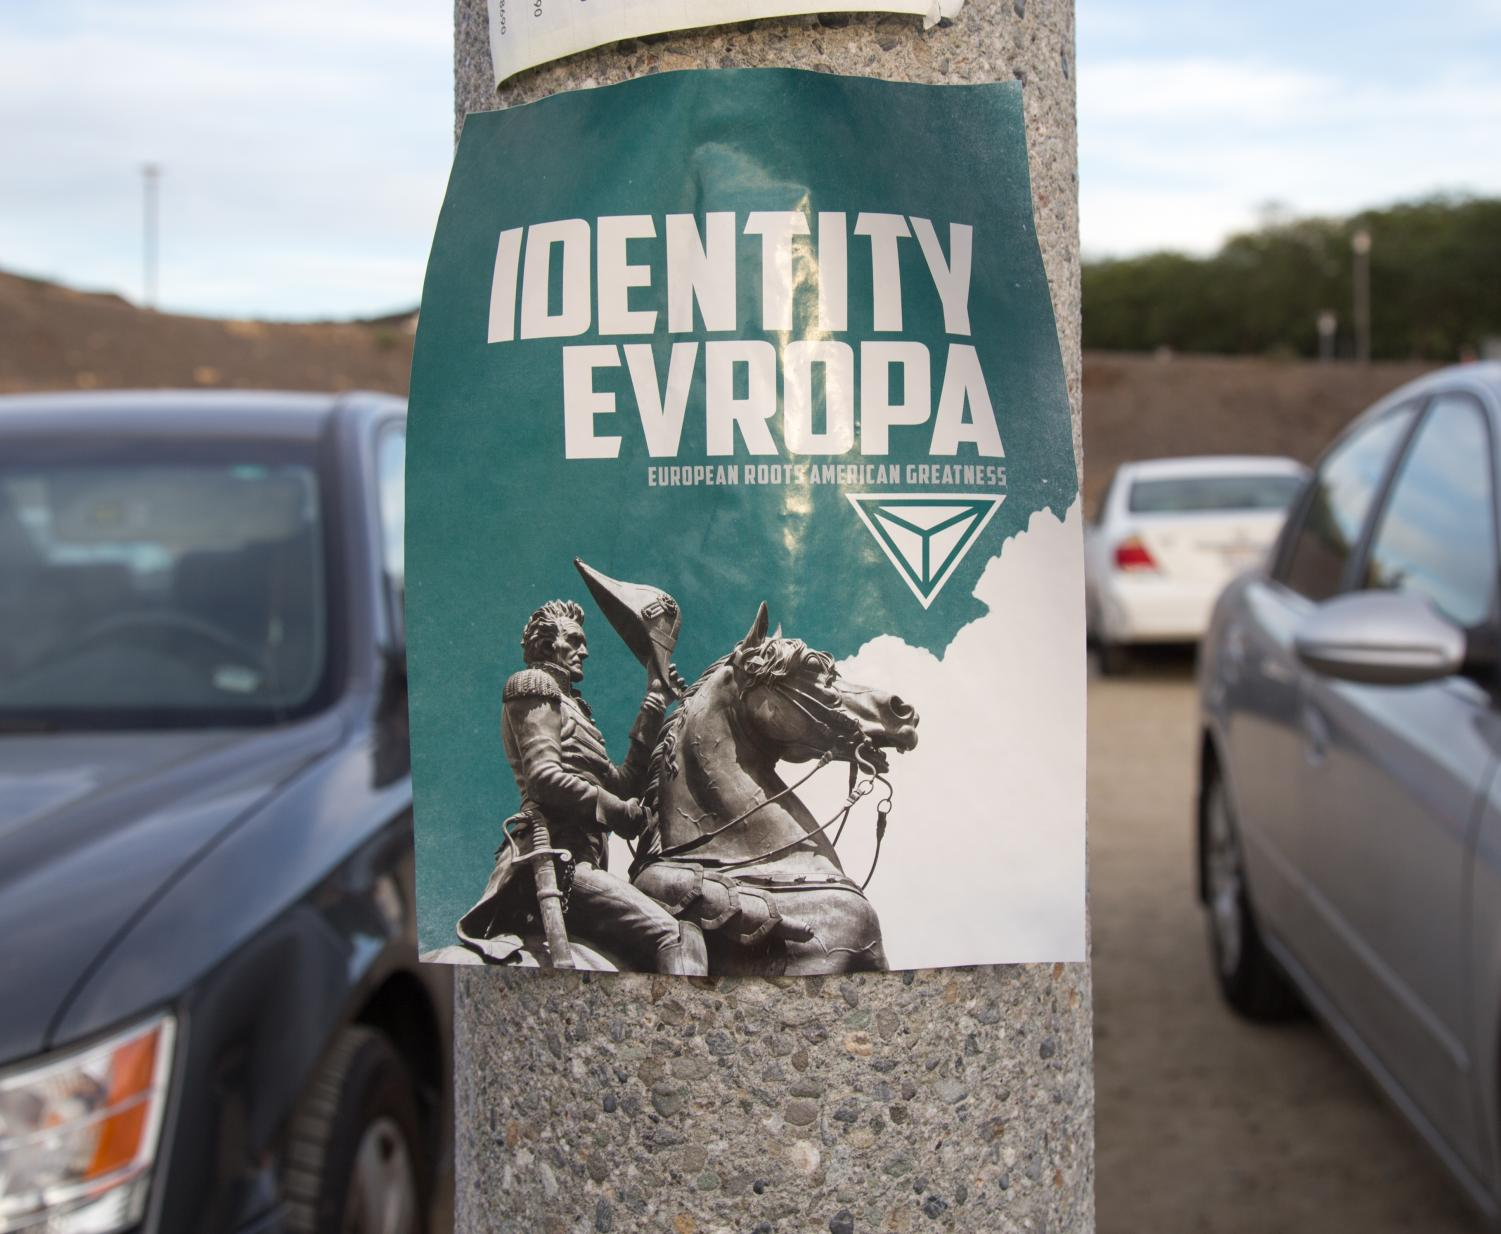 One of the many posters spread by the White Supremacist organization found in the X, Y, Z parking lot.